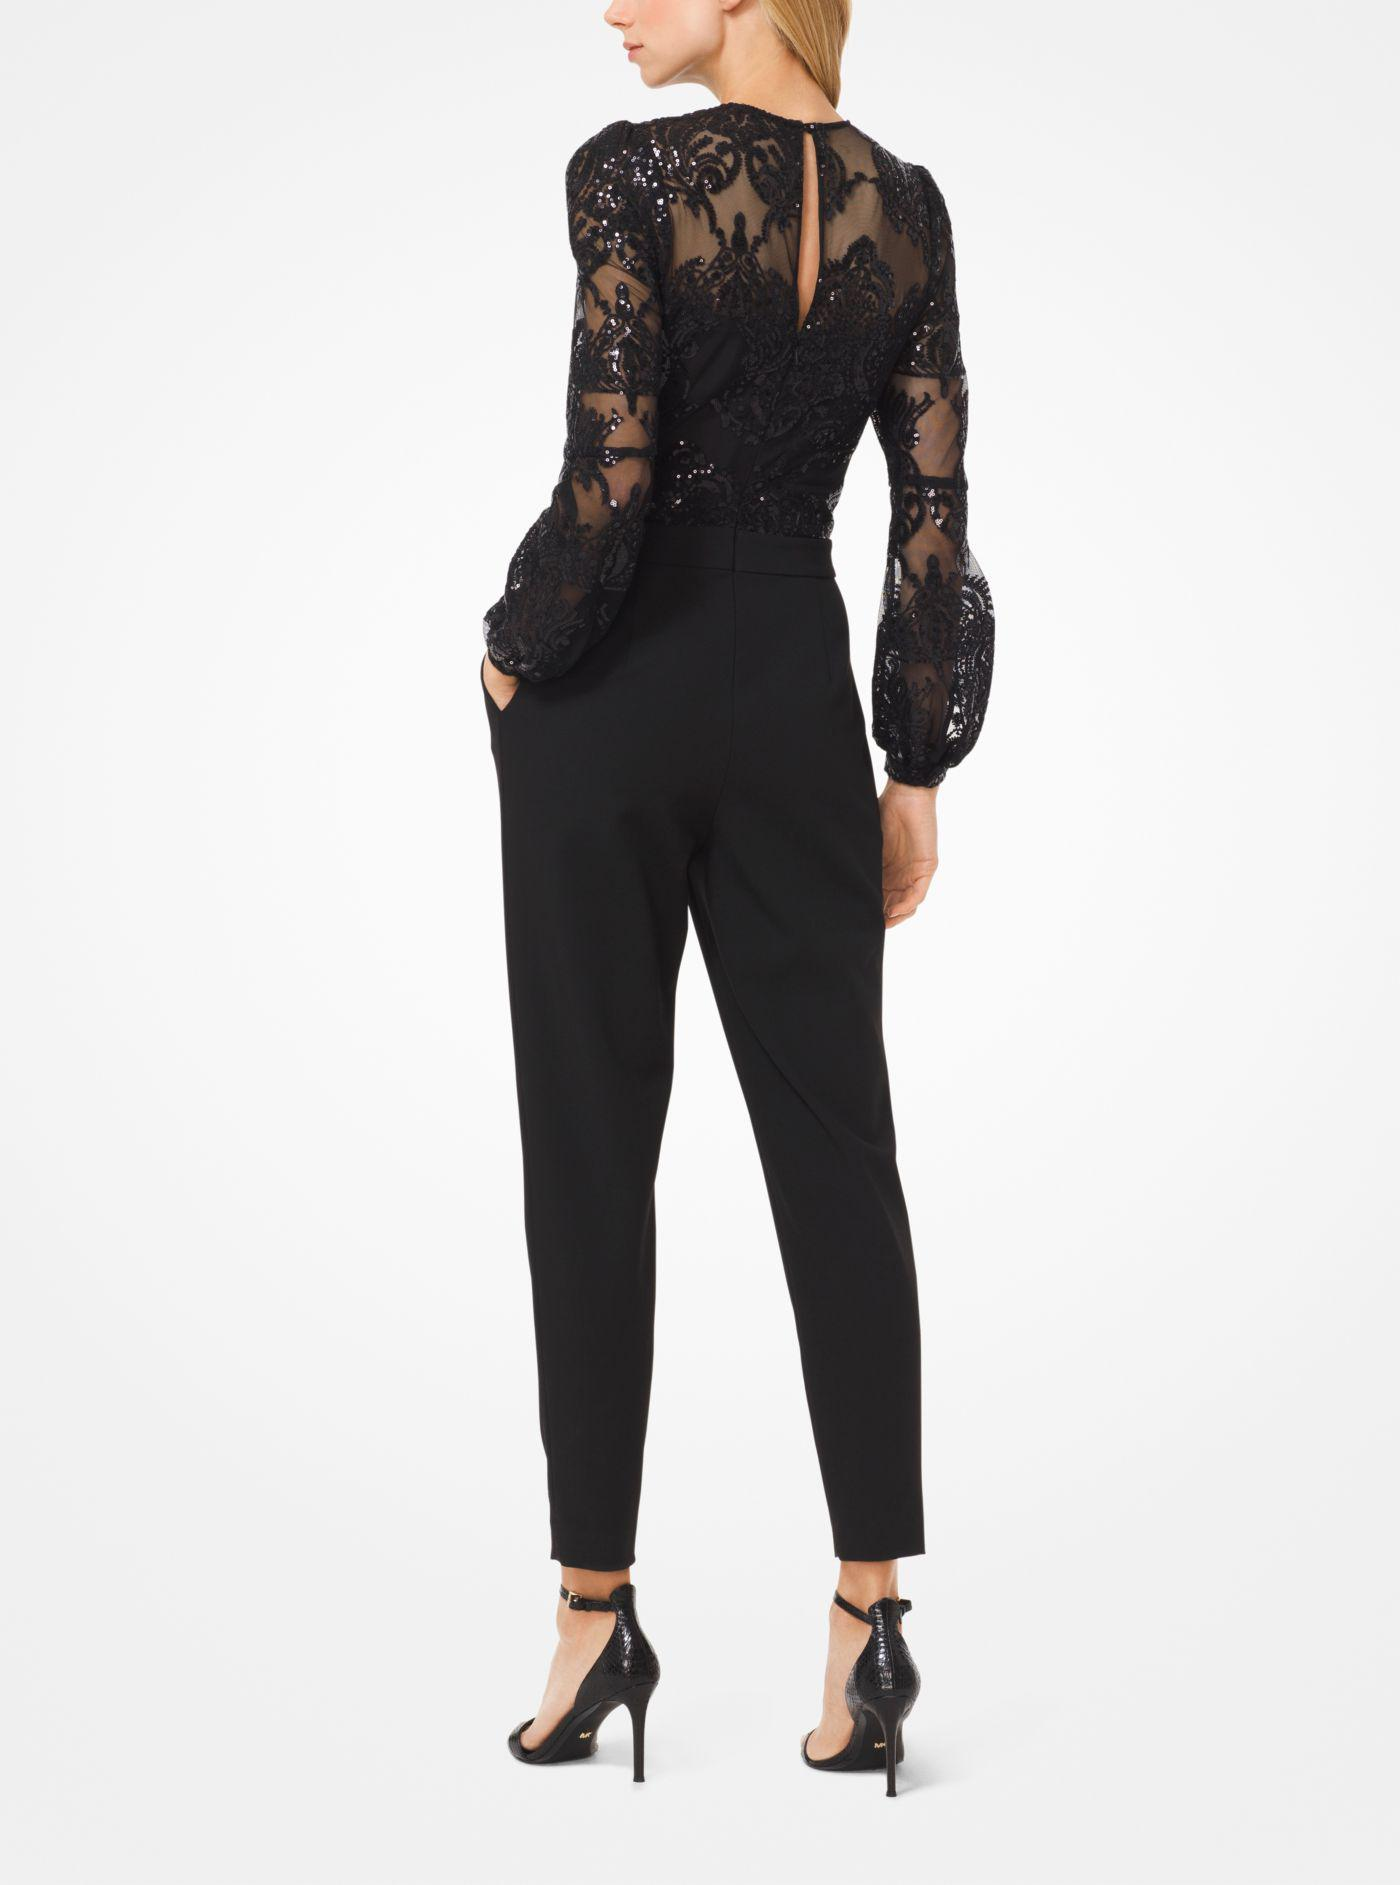 969d45365fd Michael Kors - Black Sequined Mesh Jumpsuit - Lyst. View fullscreen